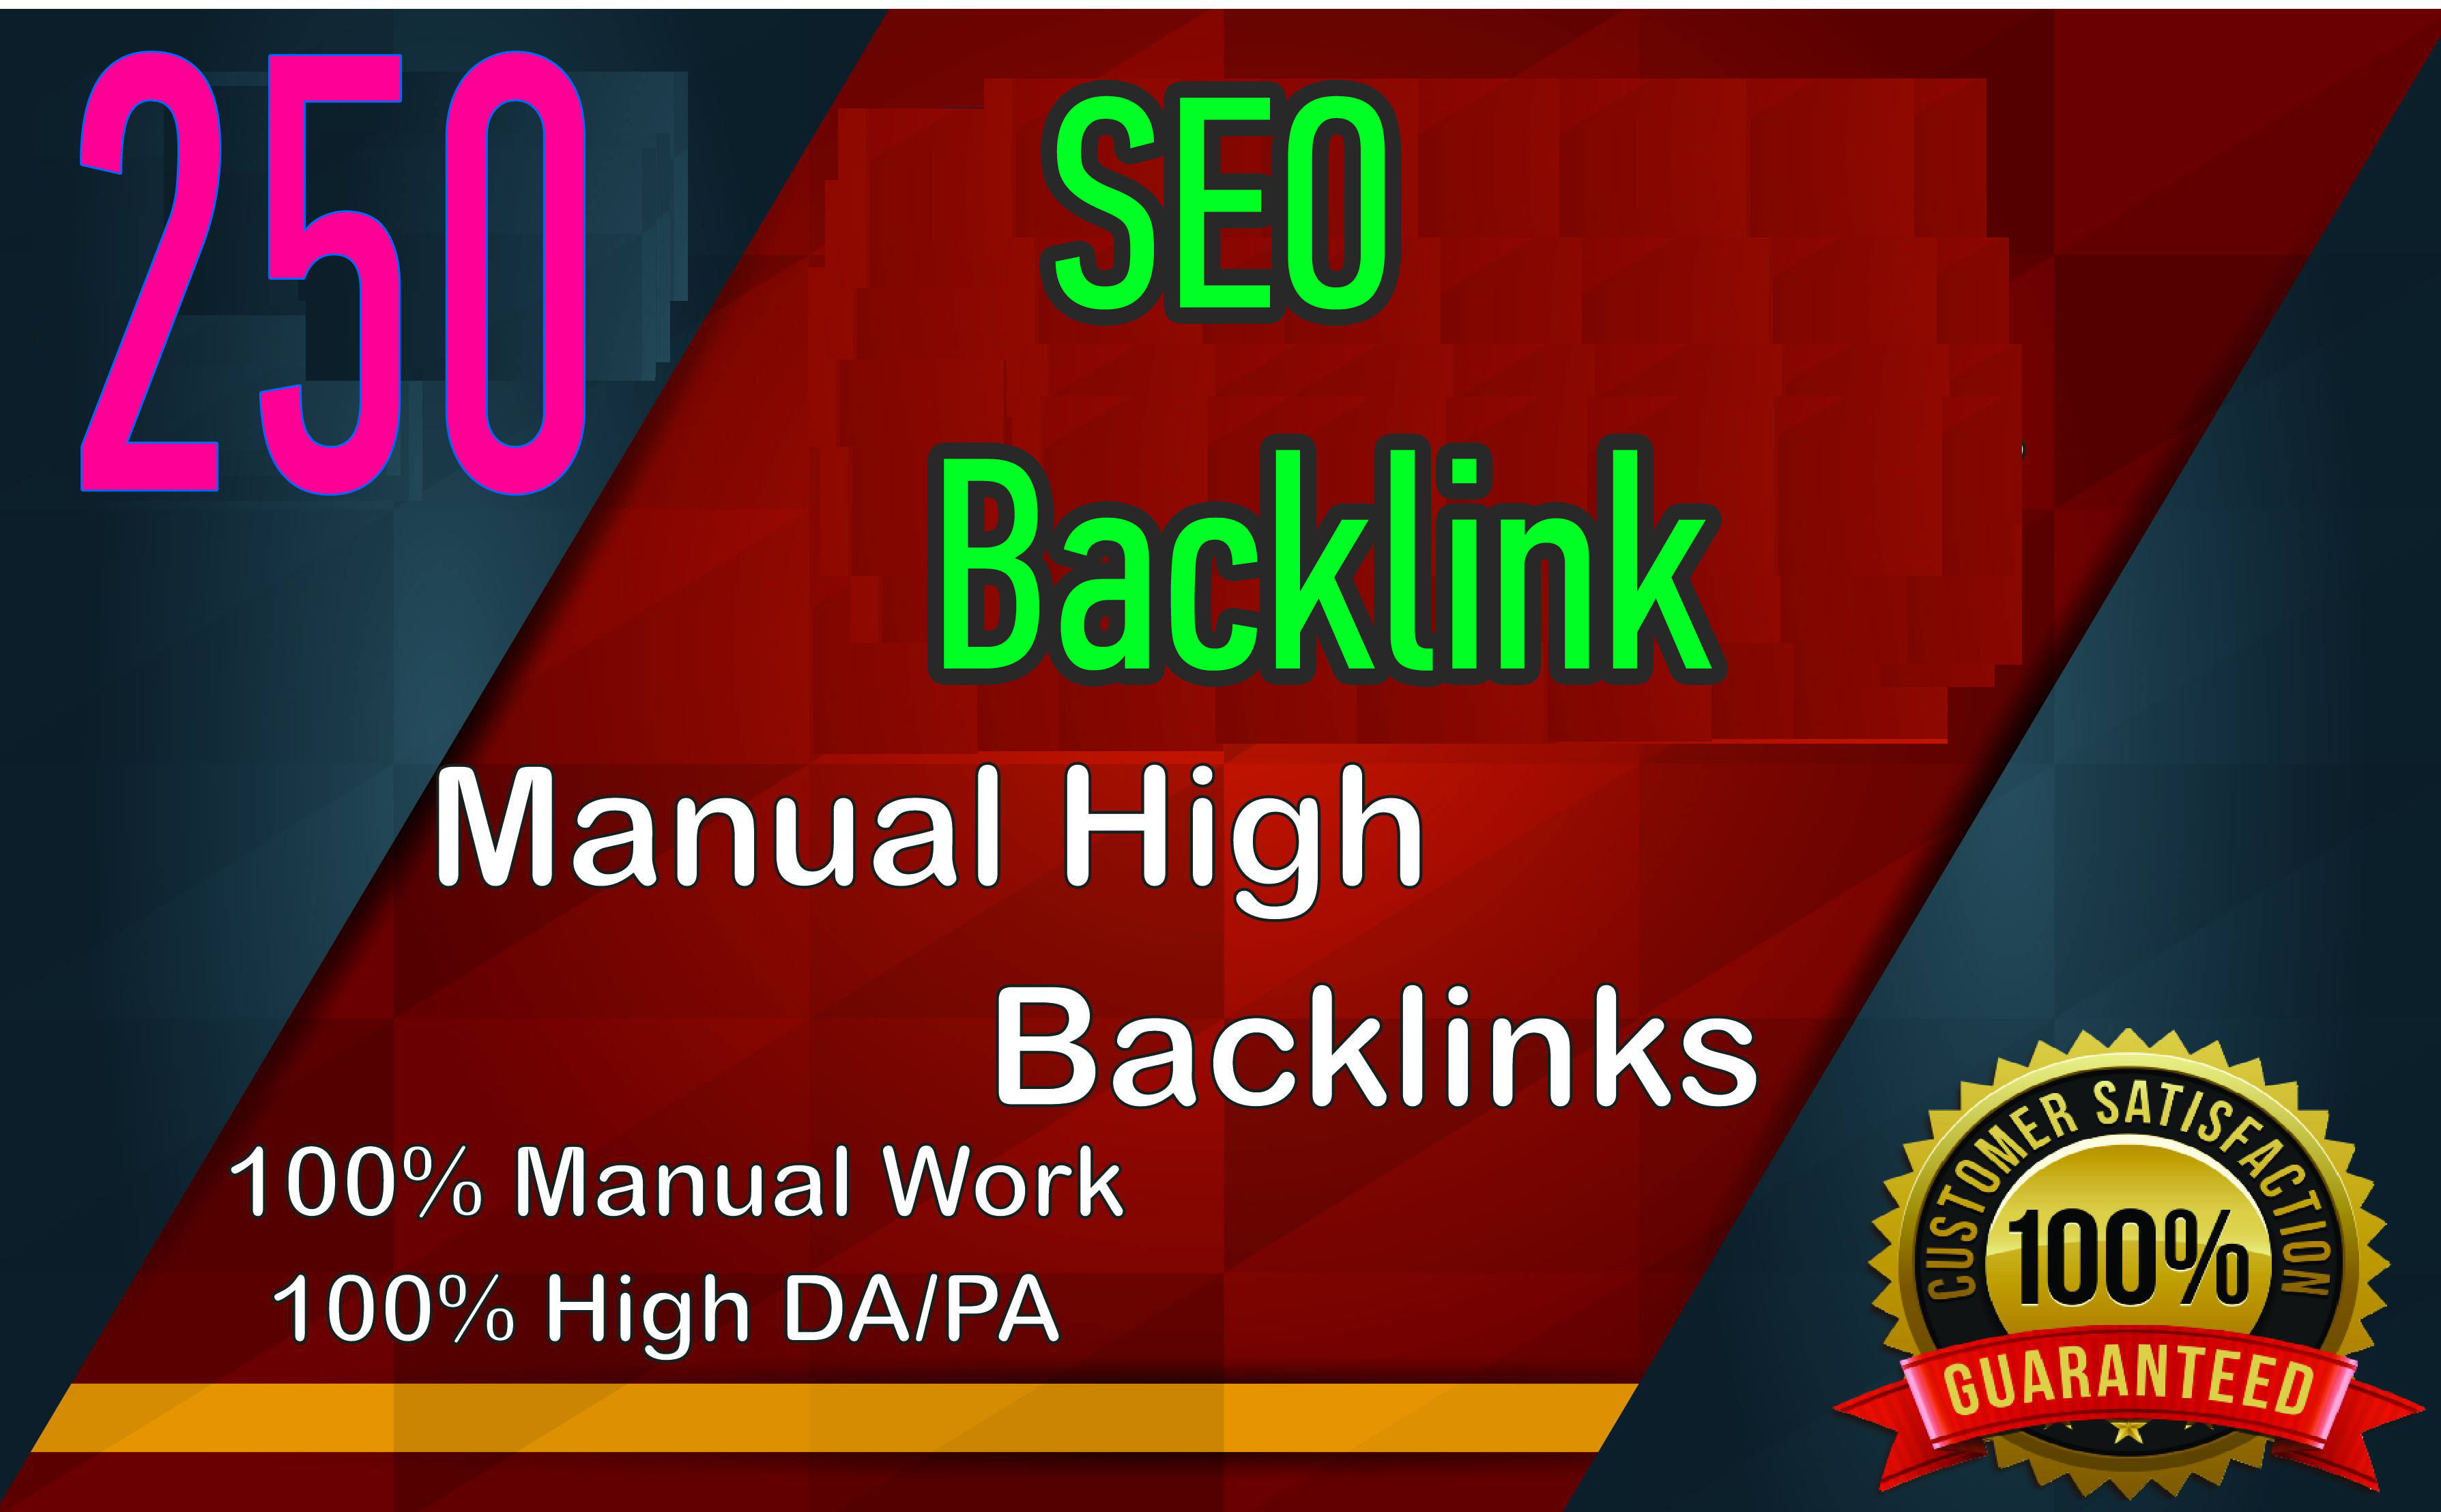 Build 250+ Backlink PA 40+ DA 40+ PA DOFOLLOW and Homepage pbn with 250+ unique websile link